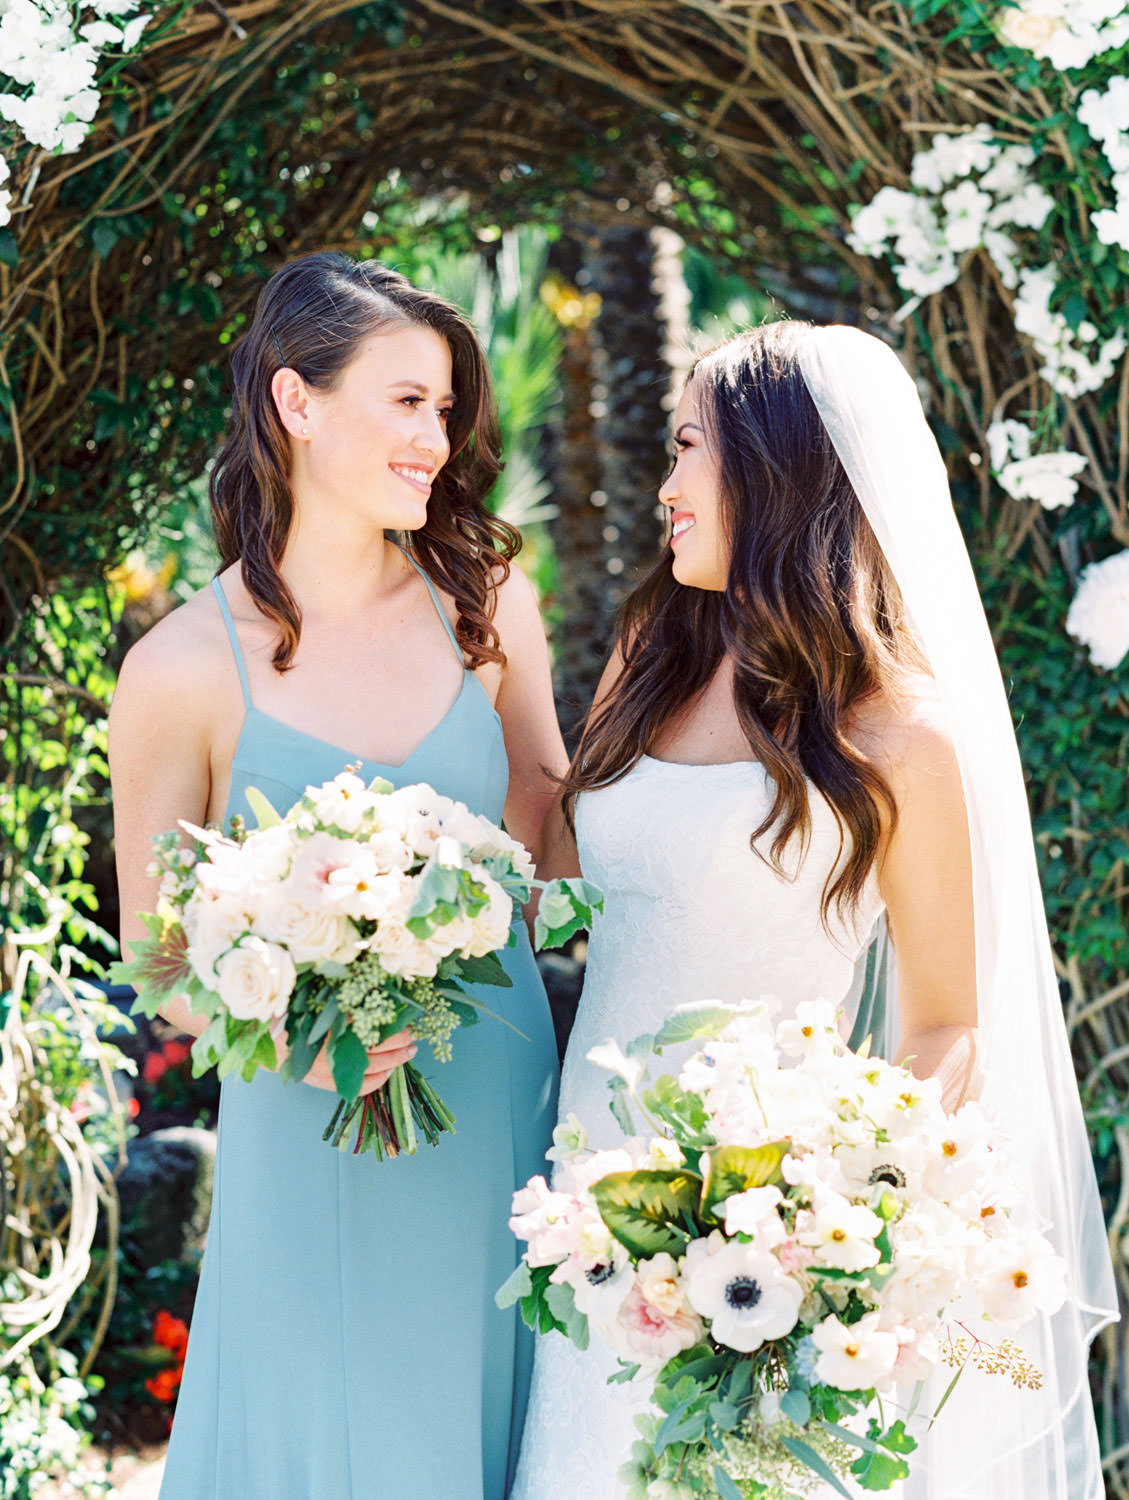 Bridesmaids in french blue dressed and bride in strapless lace gown. Bouquets with anemones, greenery, ivory, and blush flowers in front of a large floral arch captured on film. Wedding at Humphreys Half Moon Inn by Cavin Elizabeth Photography